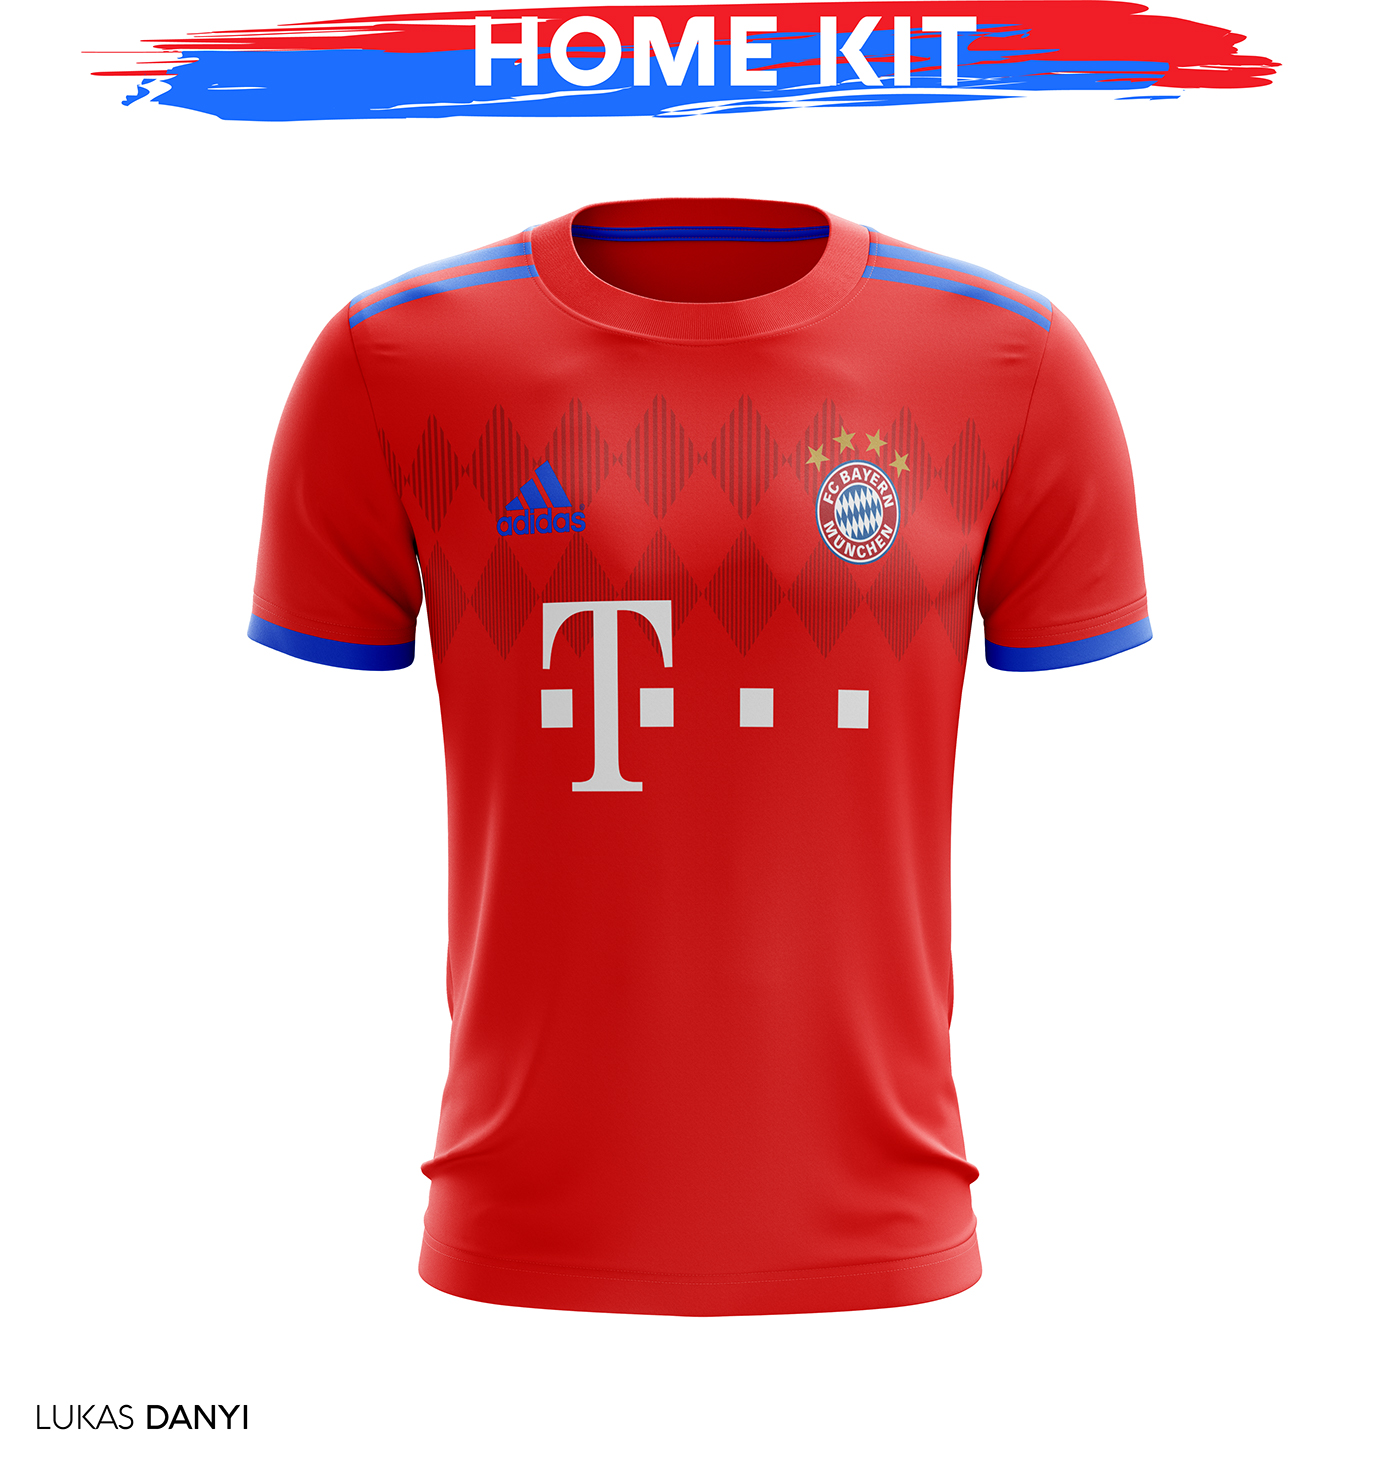 Fc Bayern Munchen Football Kit 18/19  on Behance